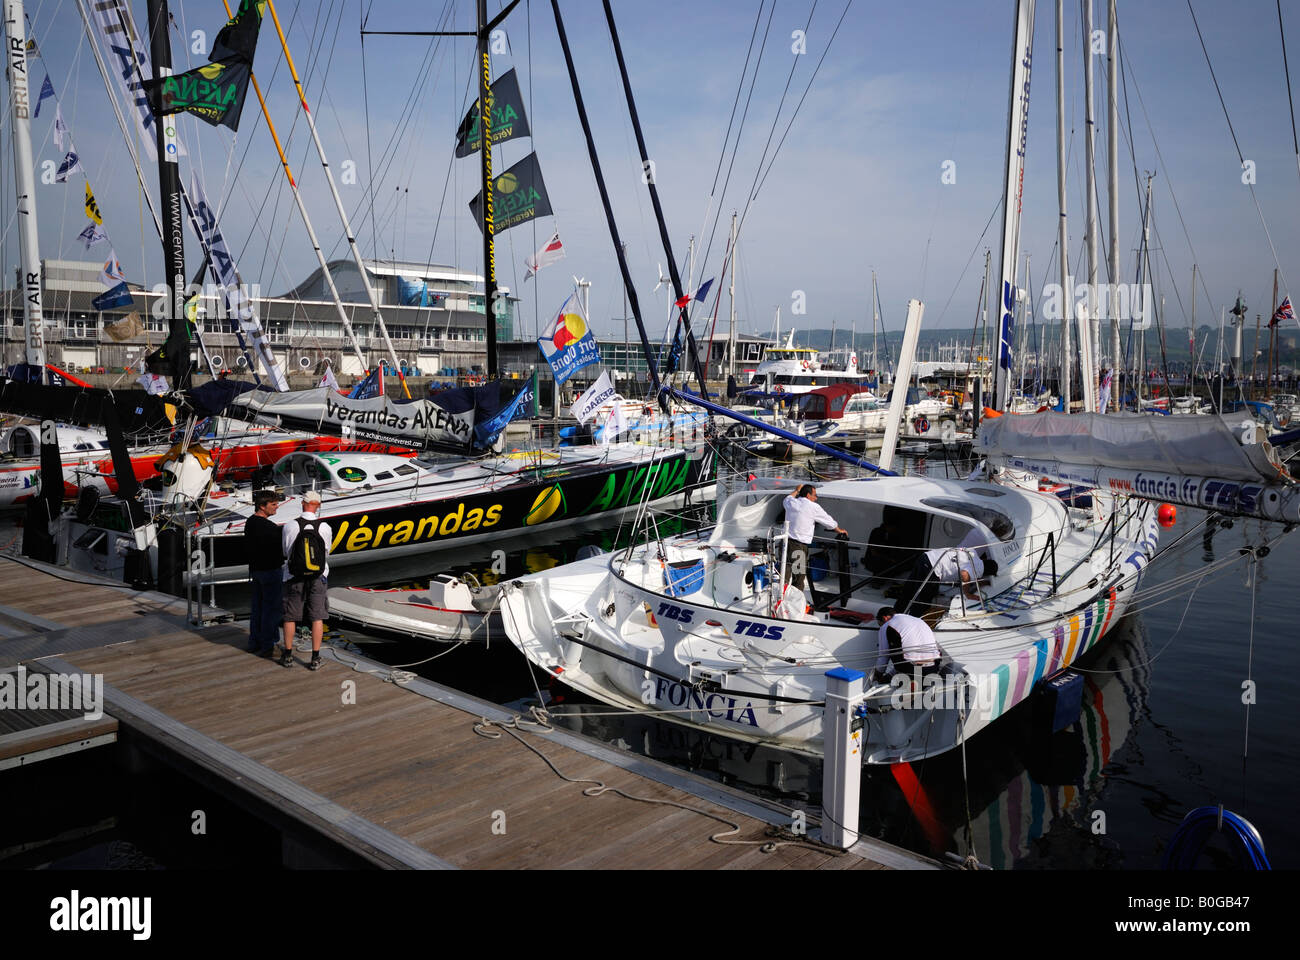 Racing yachts moored in Plymouth, UK, before the start of the Transat 2008 transatlantic race Stock Photo